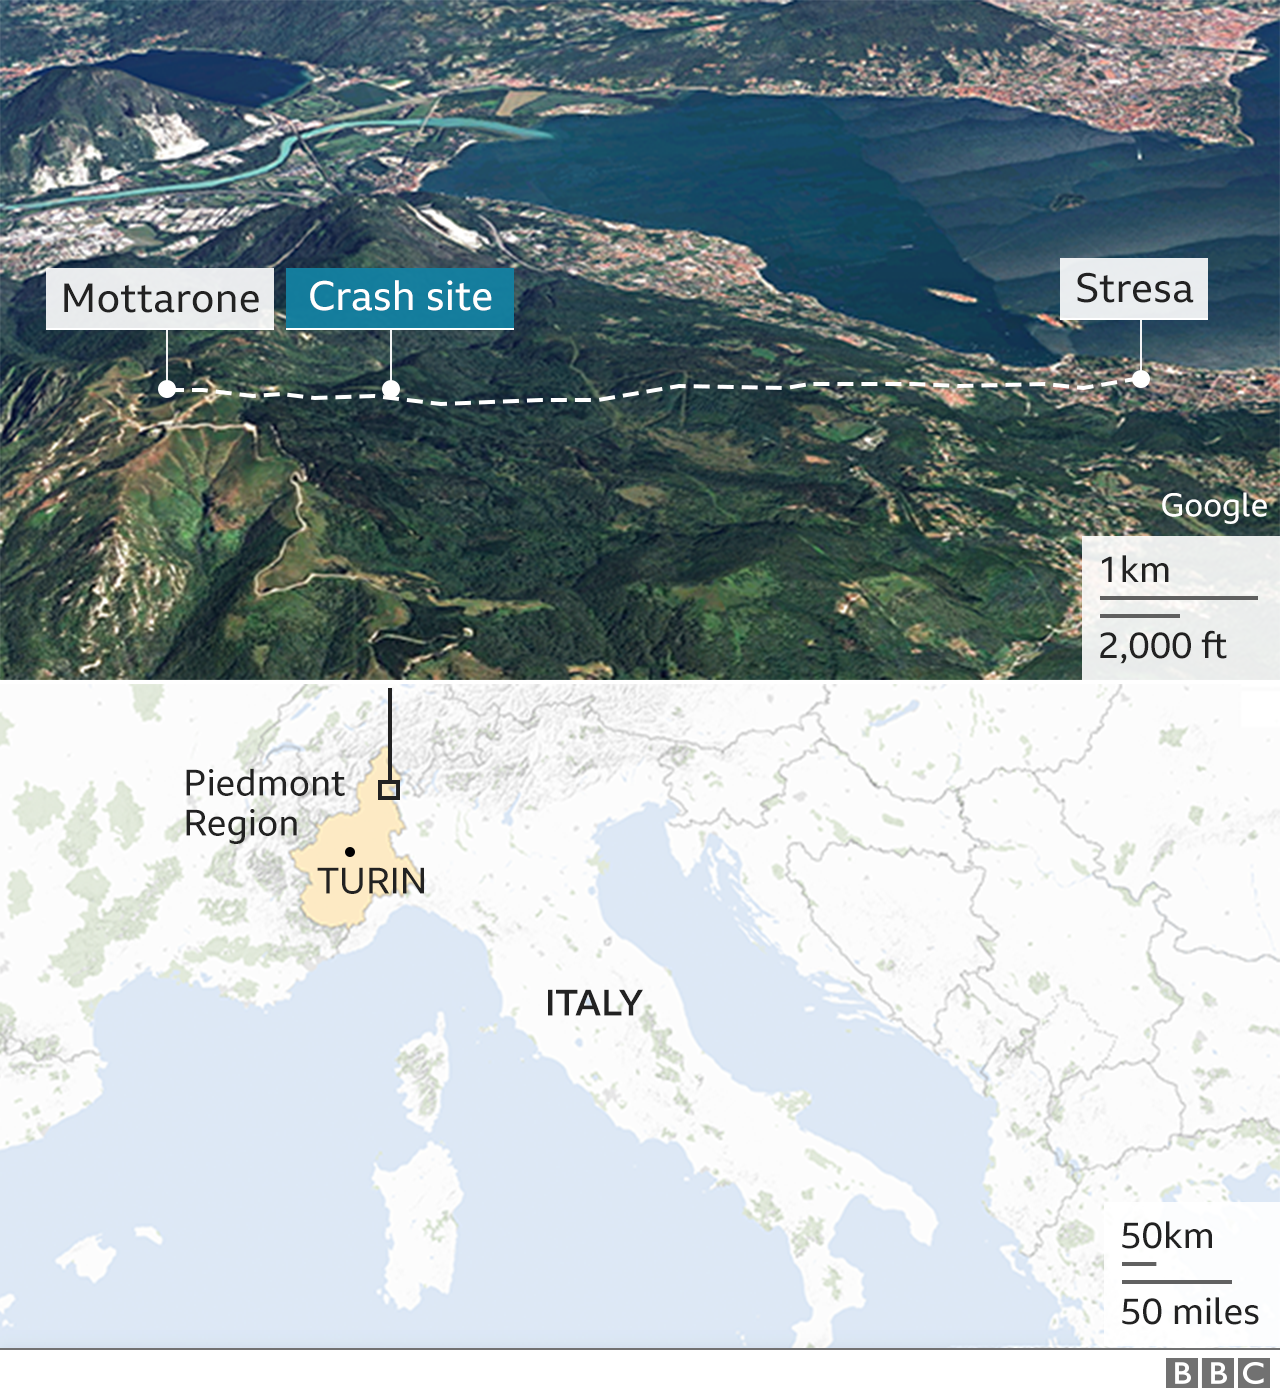 Map showing Italy as well as graphic of the crash site on satellite image